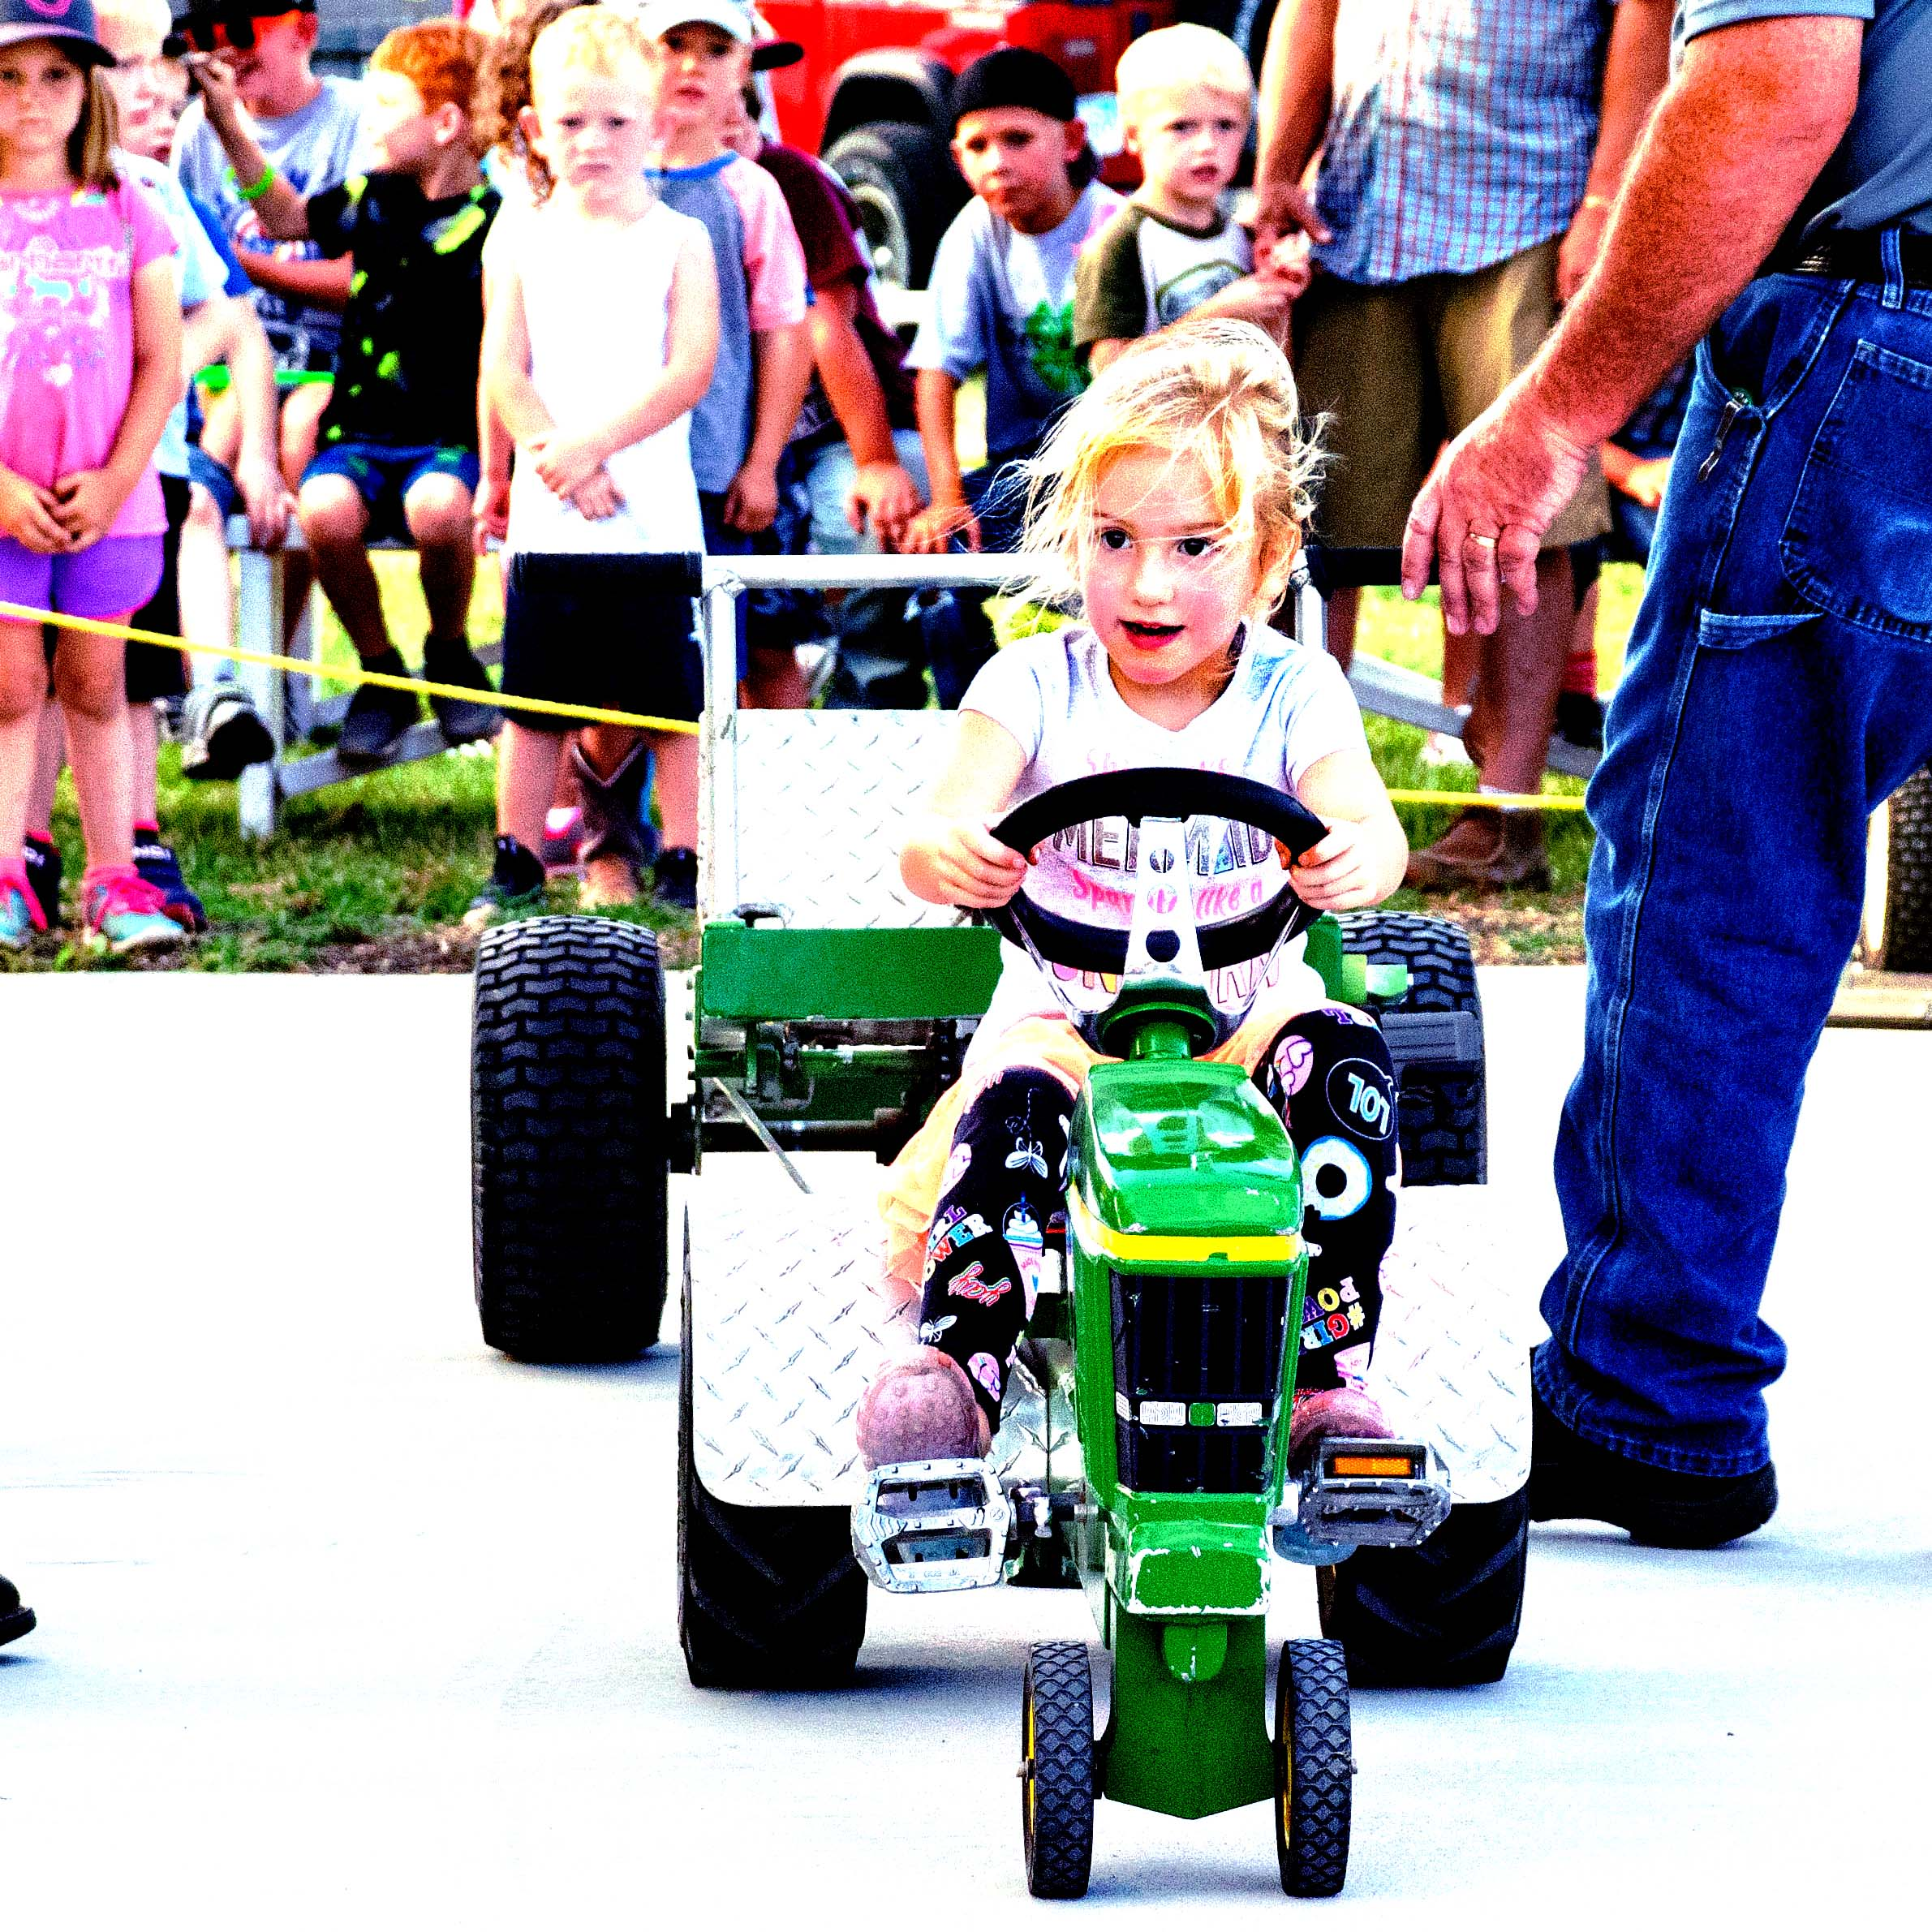 Ryan Barkdull of Diamond Archery in Wichita displays rattlesnake meat prepared in a smoker. He was assisted by Dan Hague of Aulne.